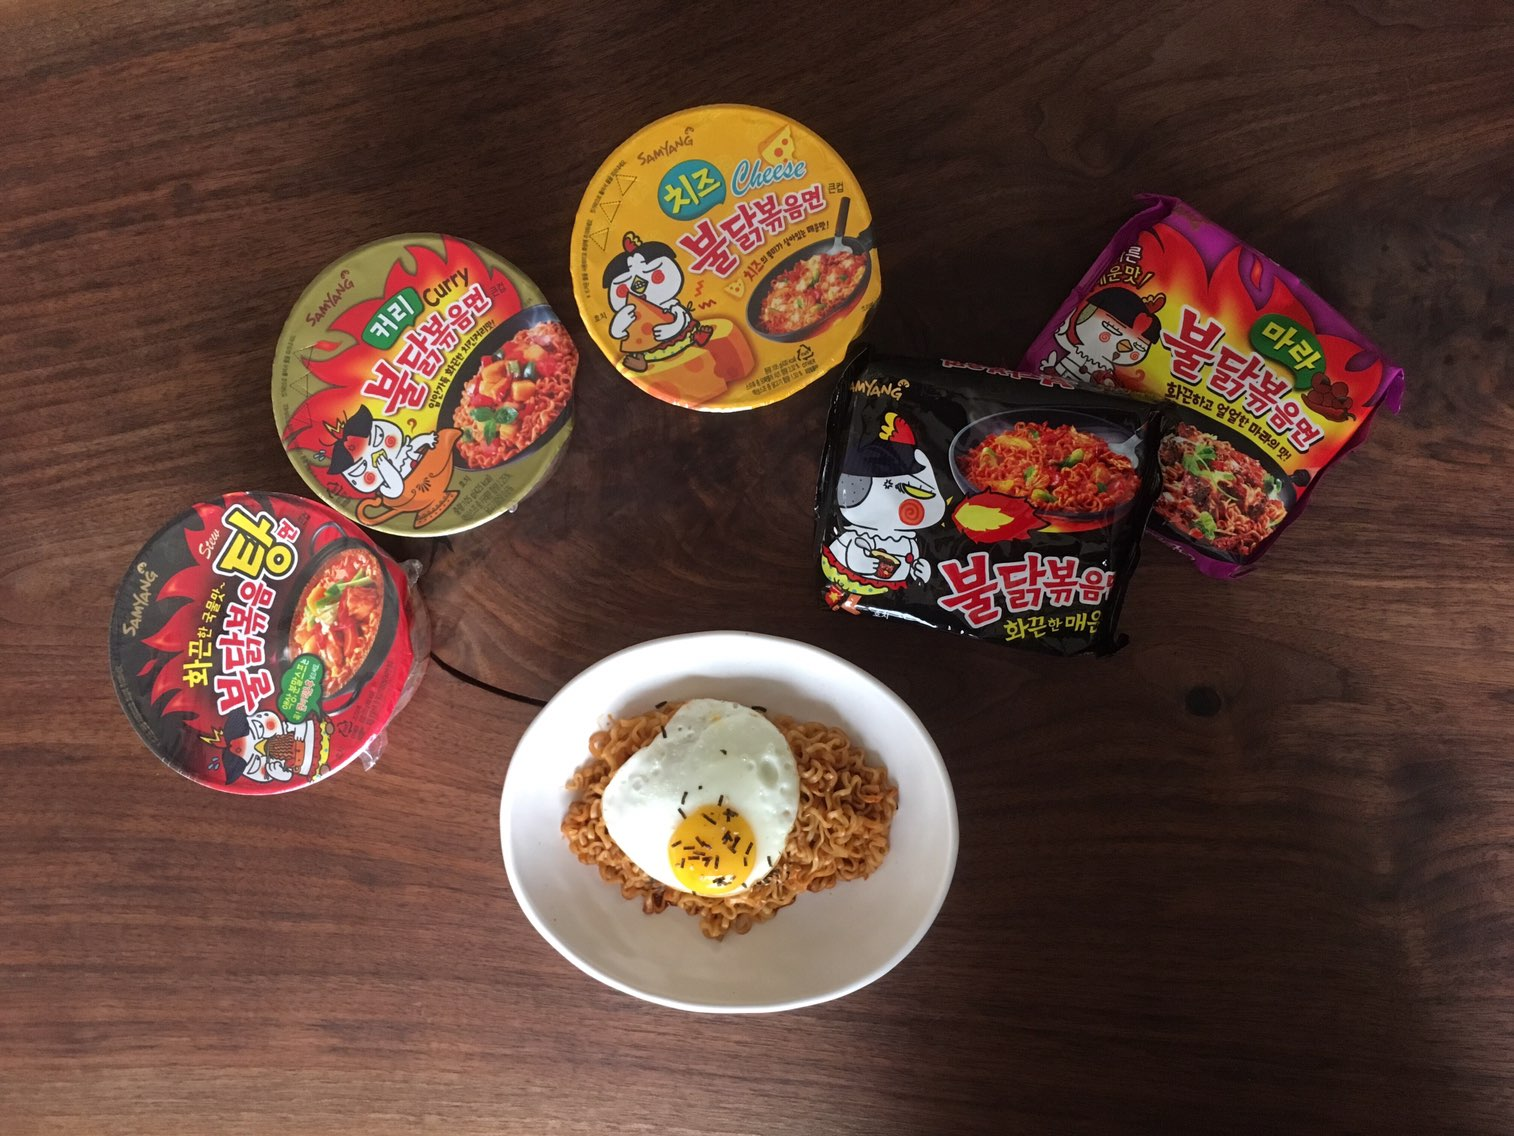 Updated We Tried All 6 Fire Noodle Flavors And Heres Our Ranking Samyang Nuclear 2x Spicy You Must Have Encountered One Of Those Challenge Videos While Surfing The Web Buldak Bokkeum Myun Which Is Commonly Referred To As